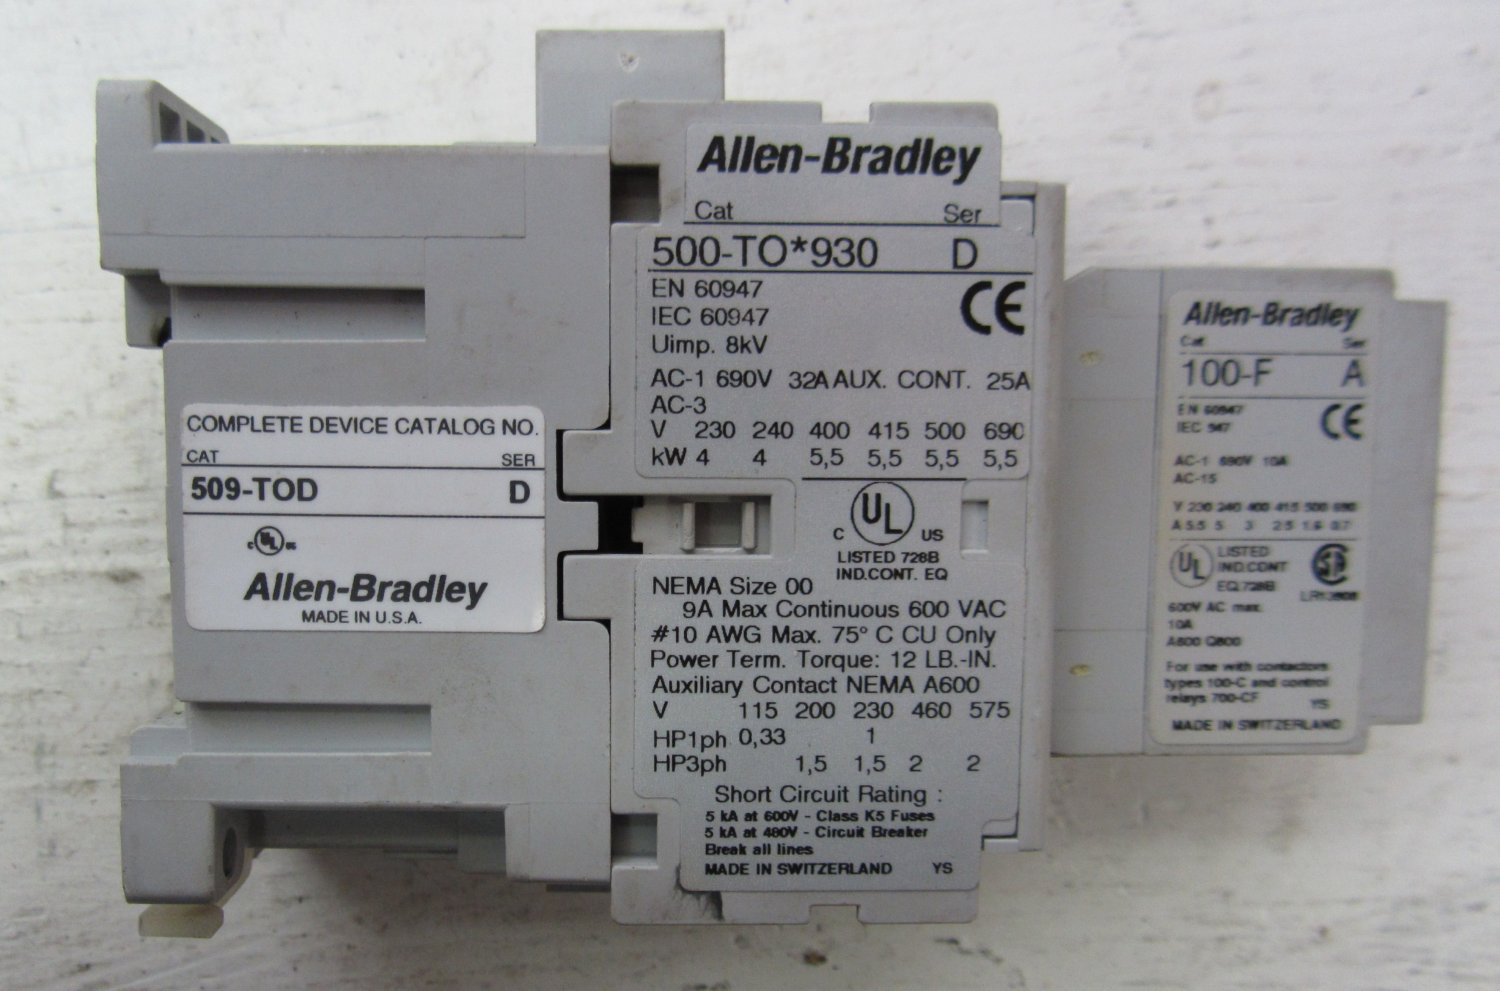 hight resolution of allen bradley 500 to 930 509 tod 100 f size 00 contactor 500to930 starter 690 32 509tod